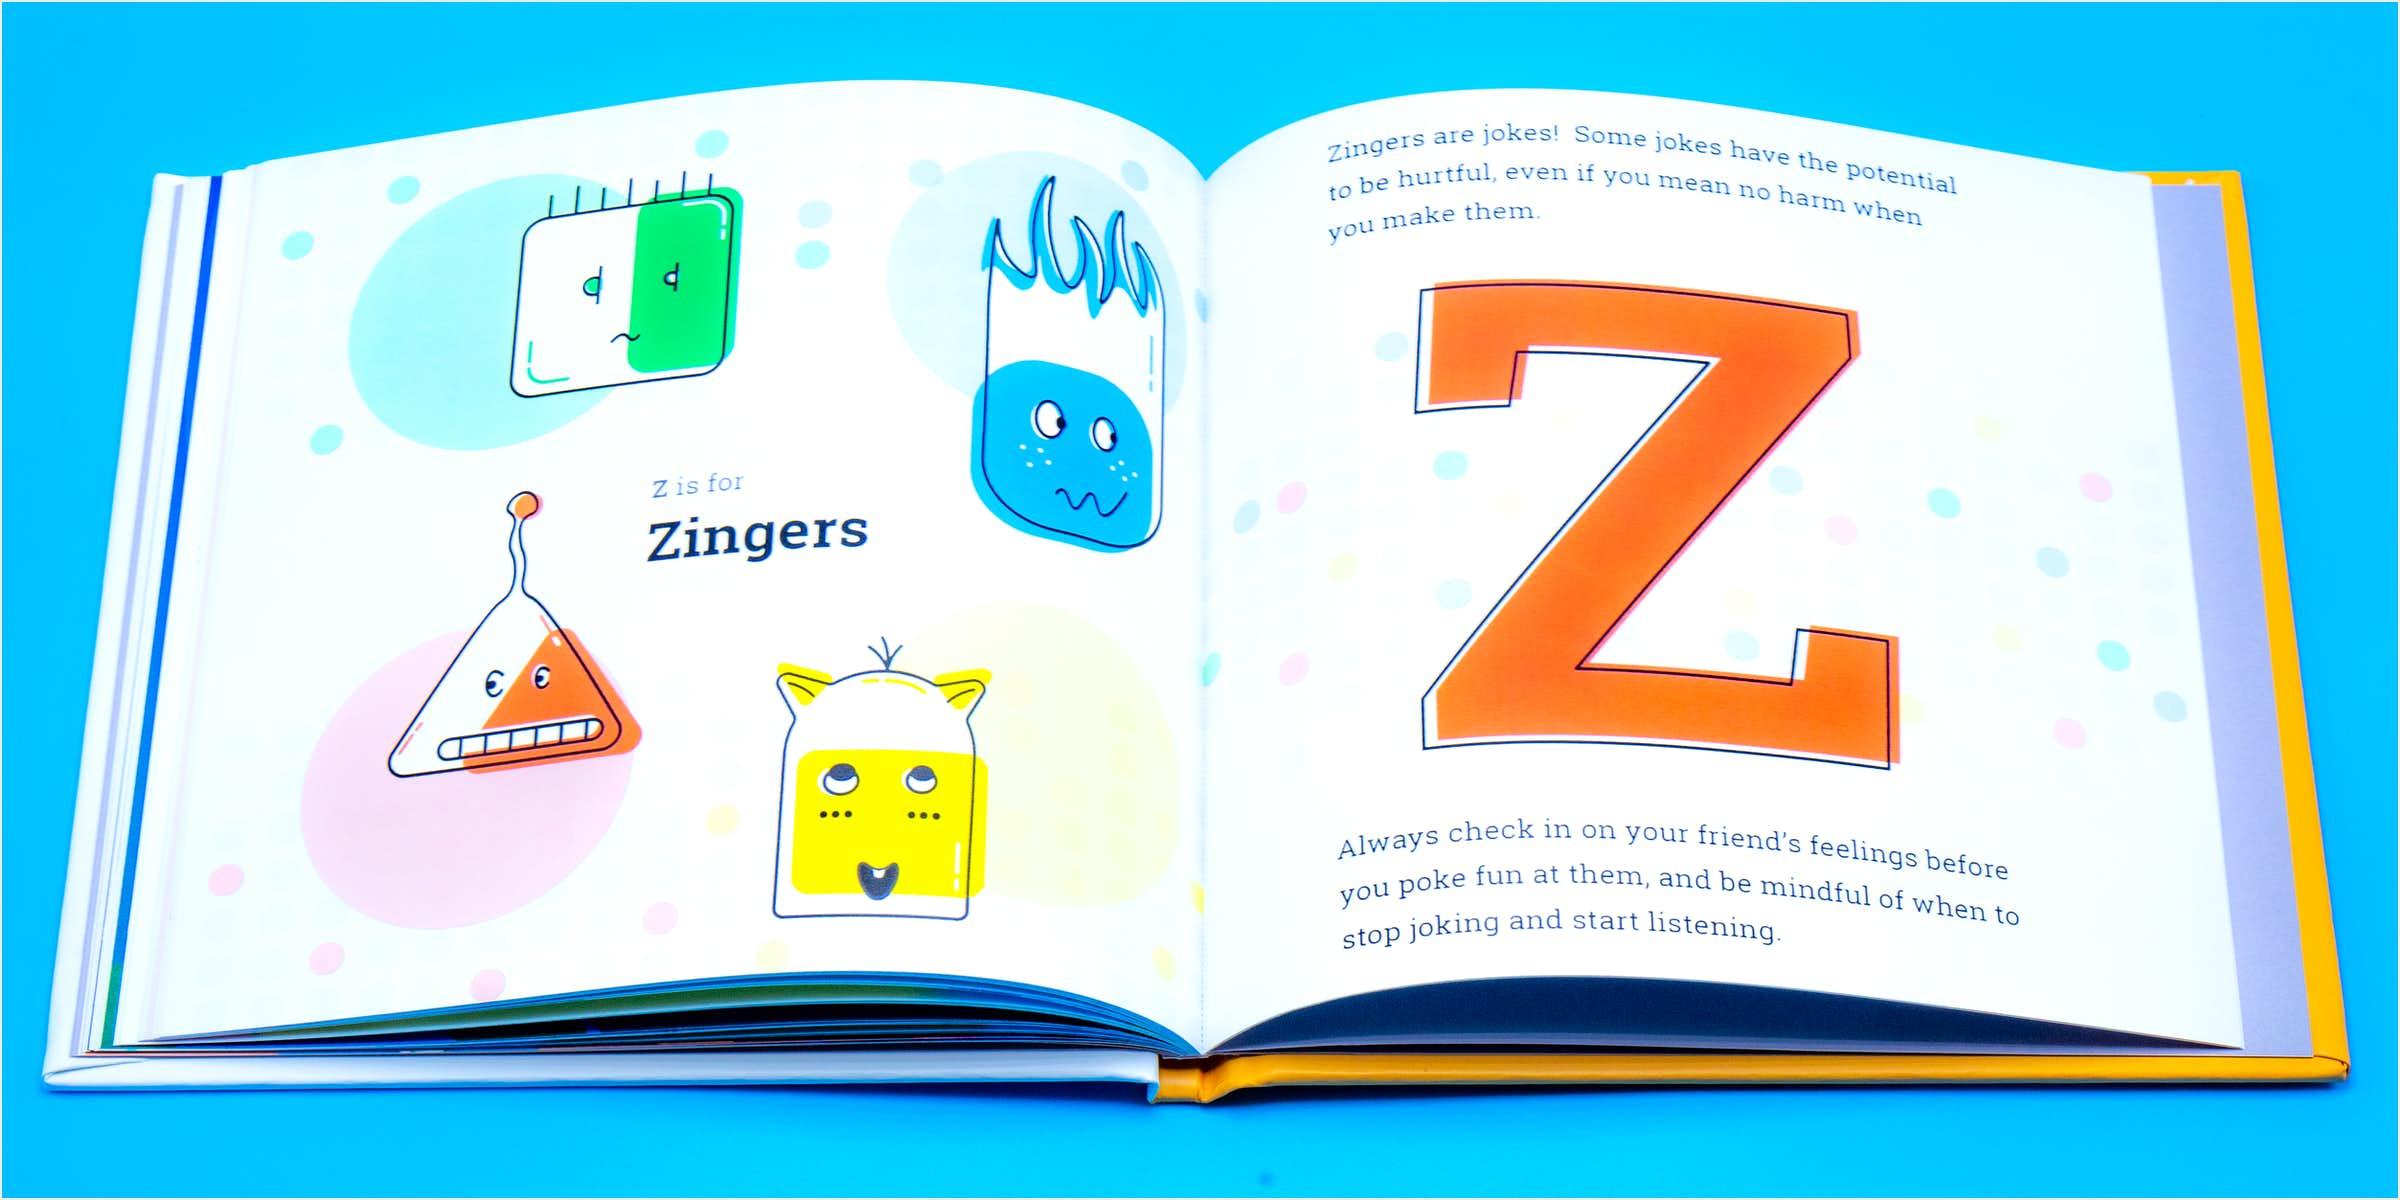 Z is for Zingers